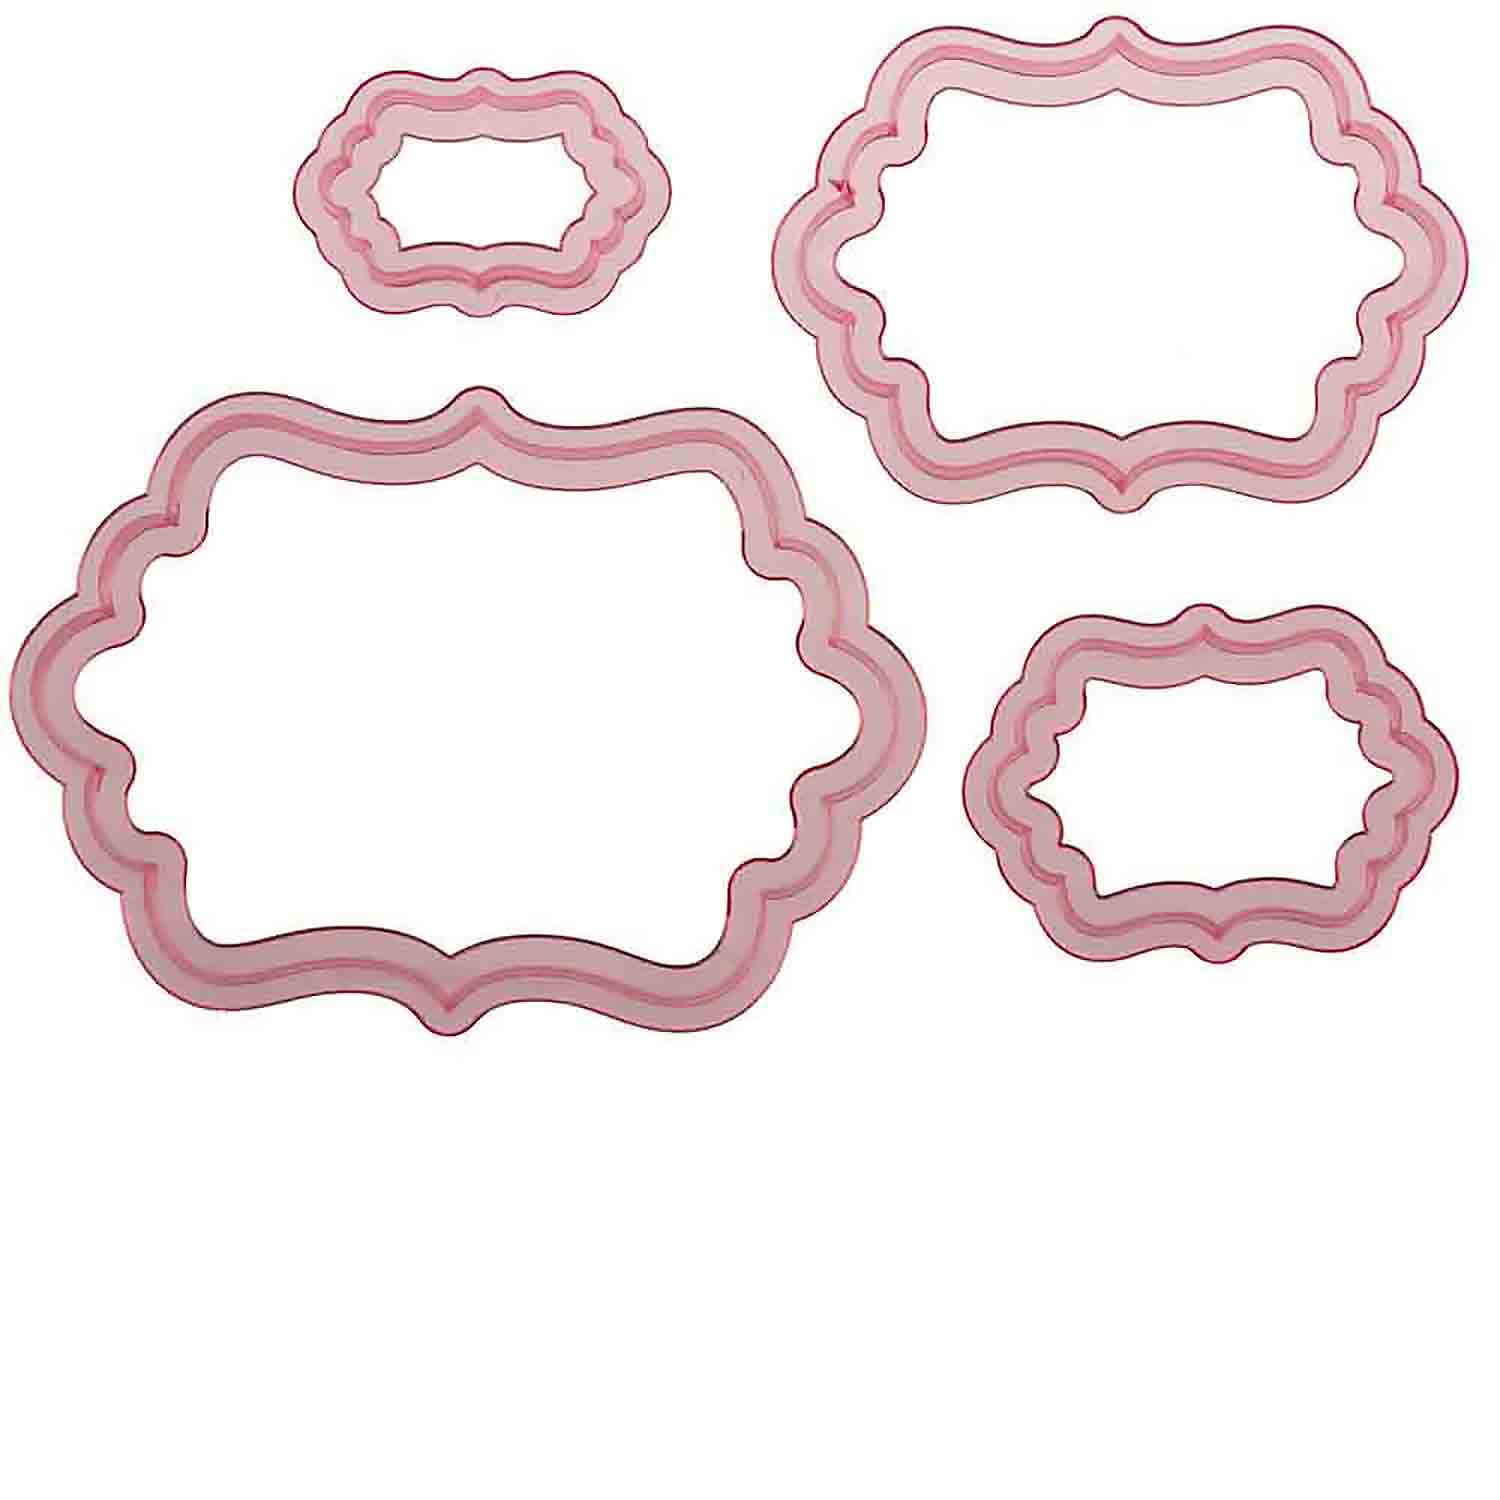 Dottie Frame Cutter Set by Marina Sousa